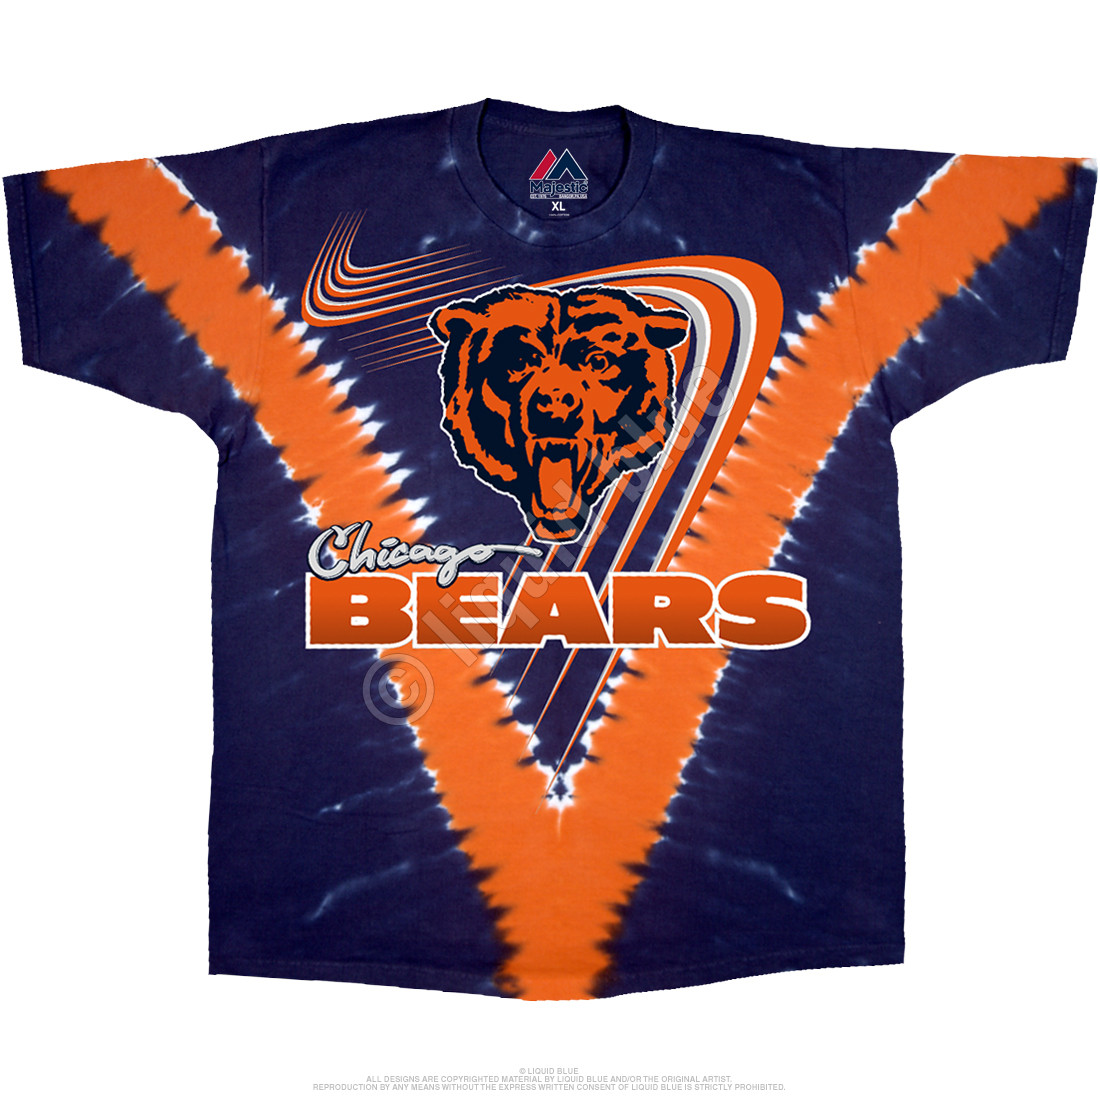 purchase cheap b0831 841dd Chicago Bears V Tie-Dye T-Shirt